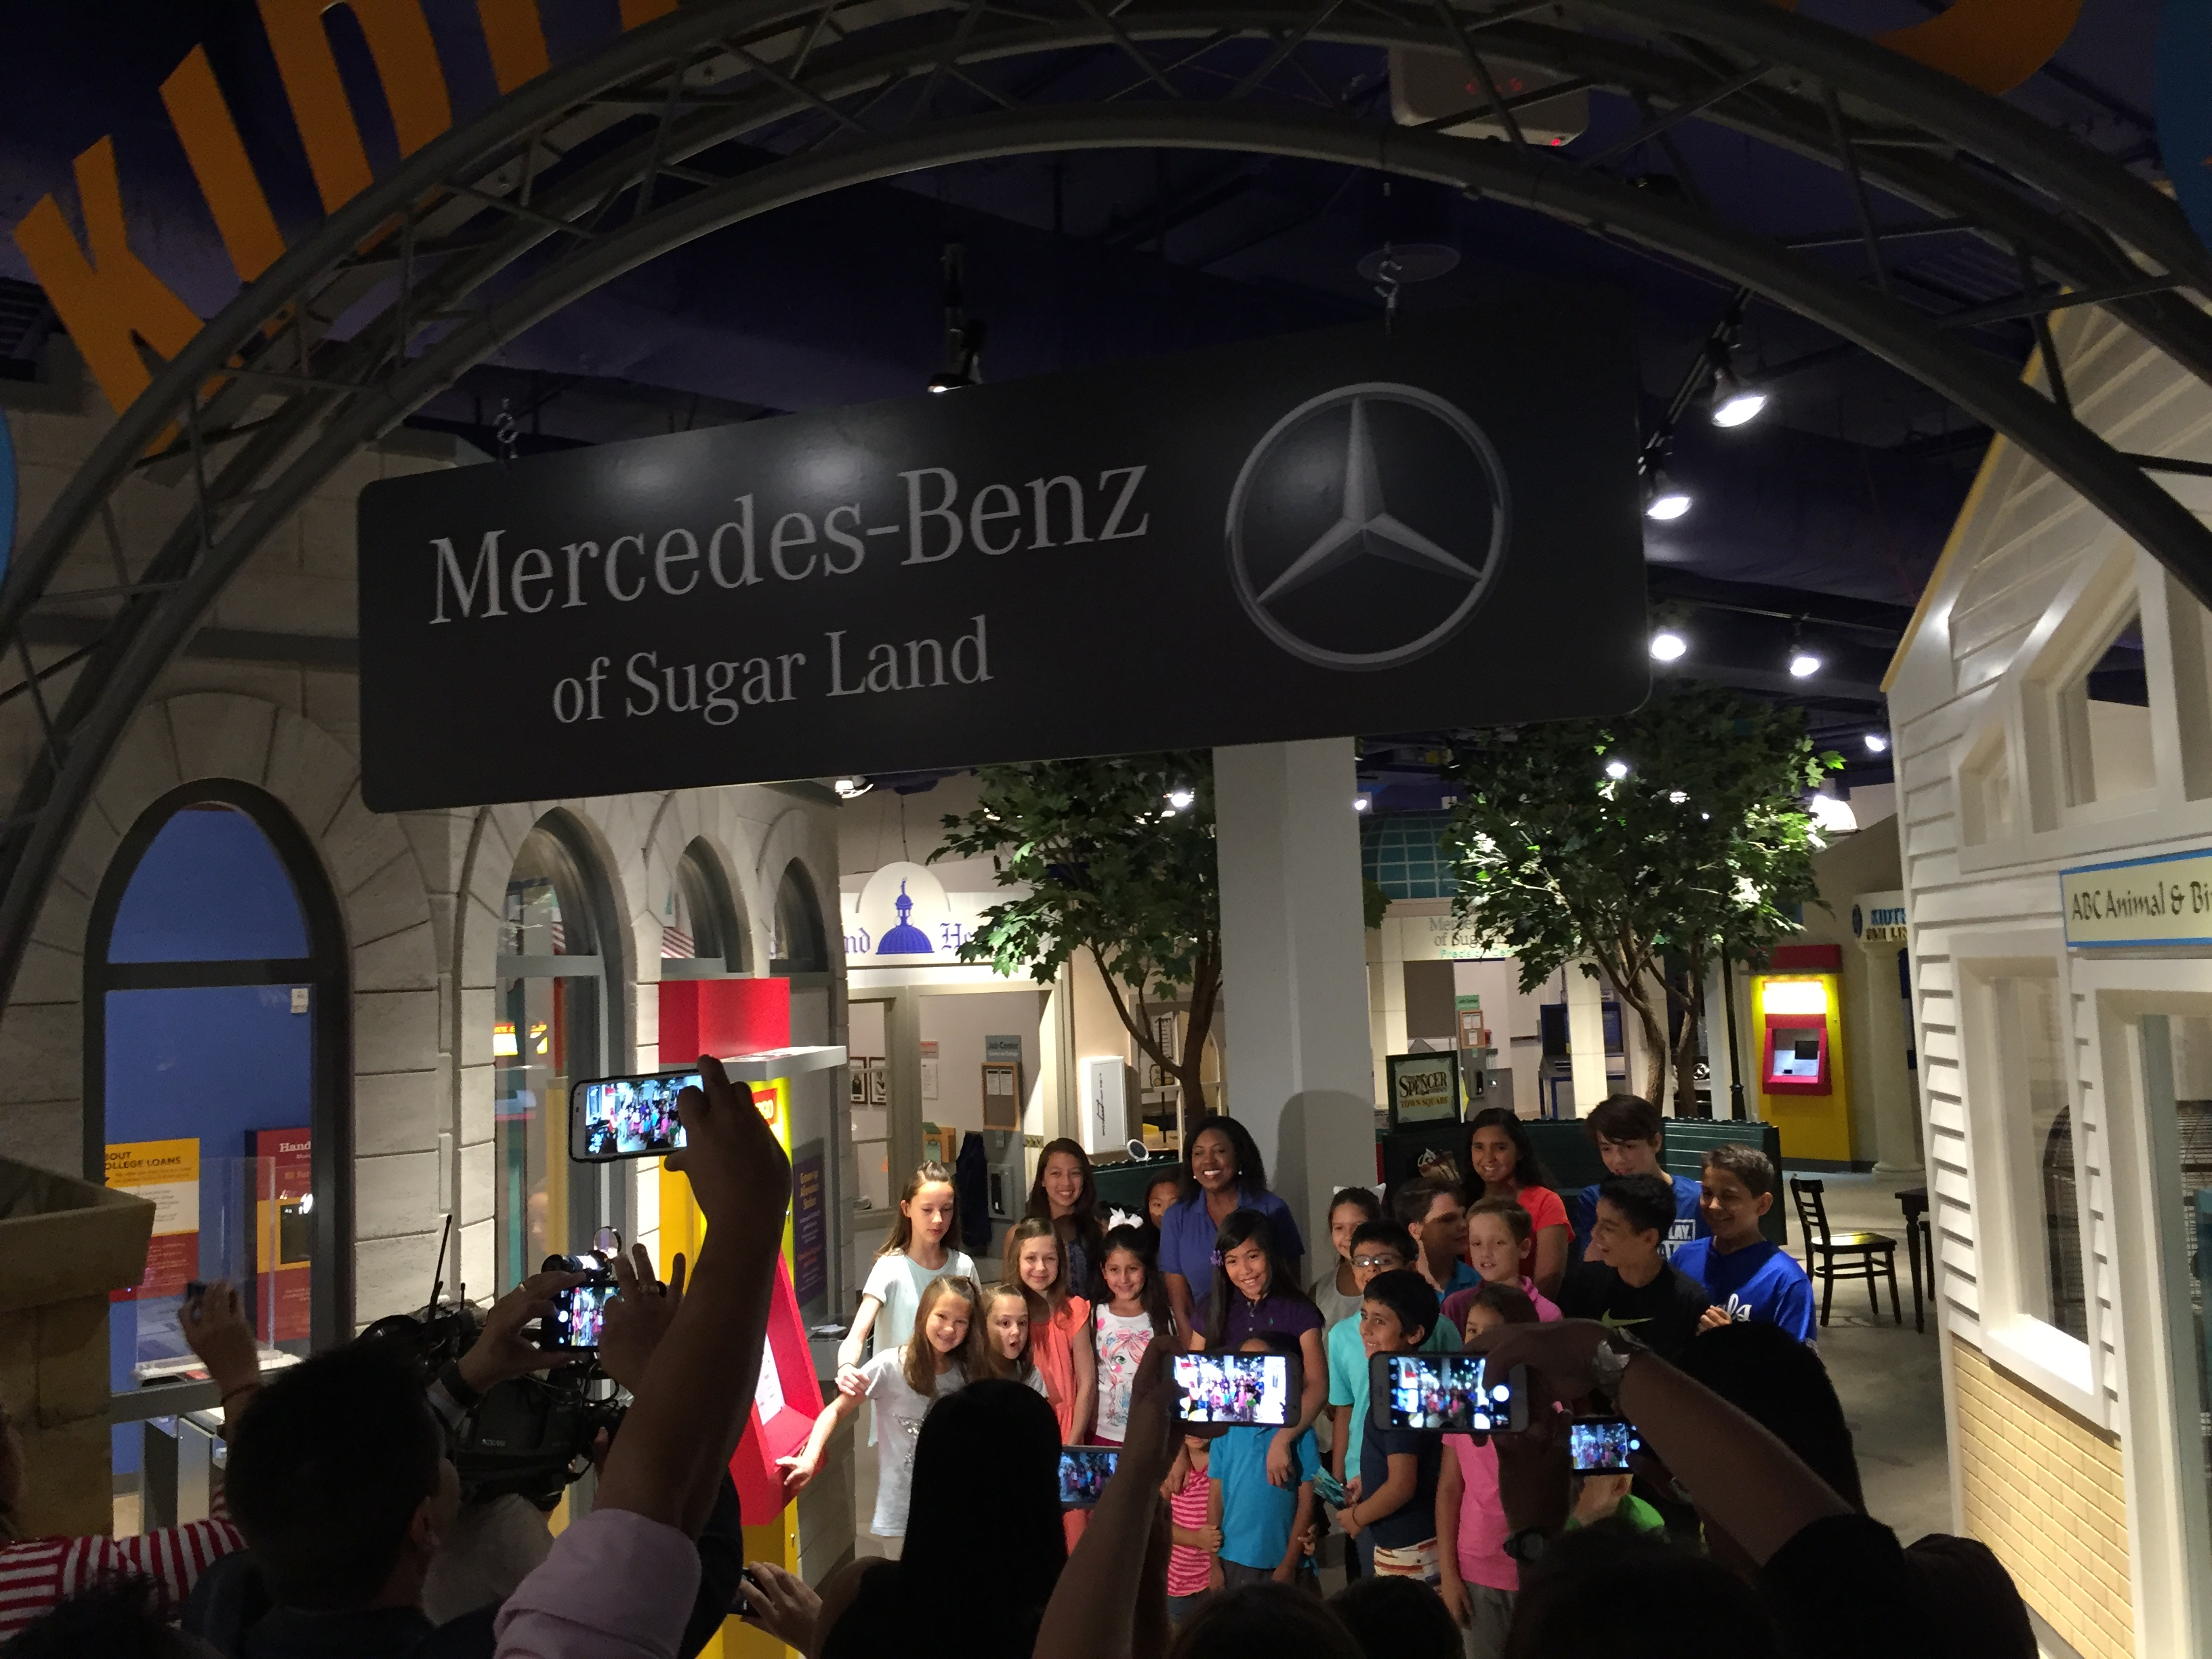 Mercedes benz of sugar land precision center exhibit is for Mercedes benz sugarland careers